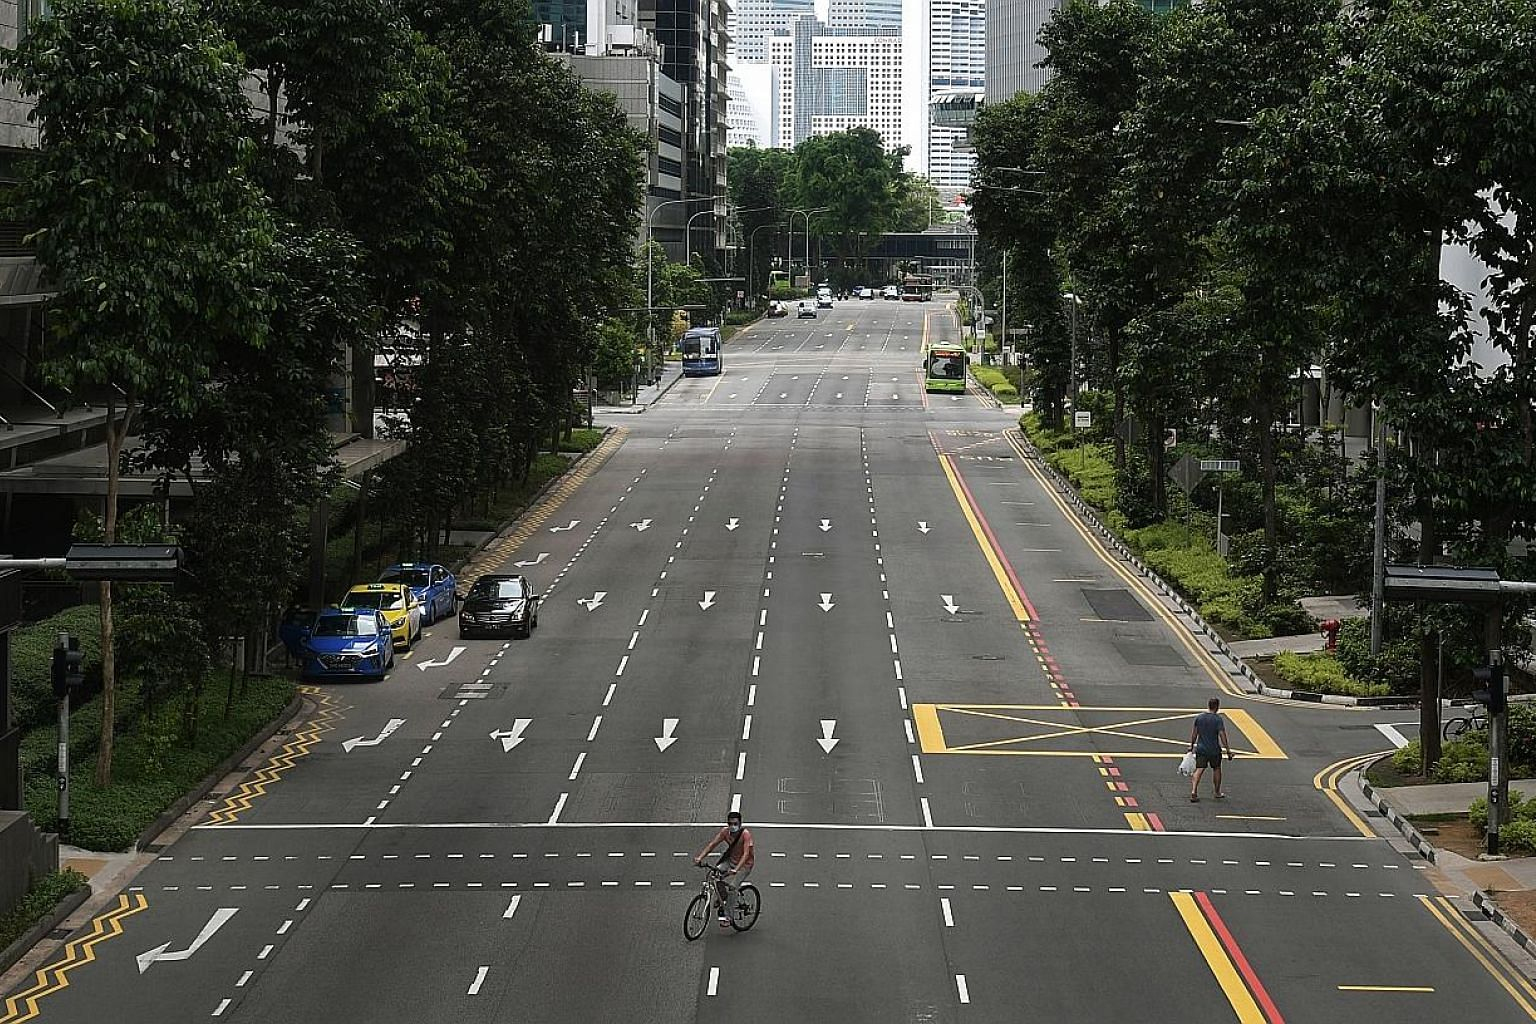 A deserted Shenton Way in the Central Business District in April, during the circuit breaker period. Even as Singapore gradually reopens its economy, it seems many employees, at the urging of the authorities, are in no rush to return to their offices